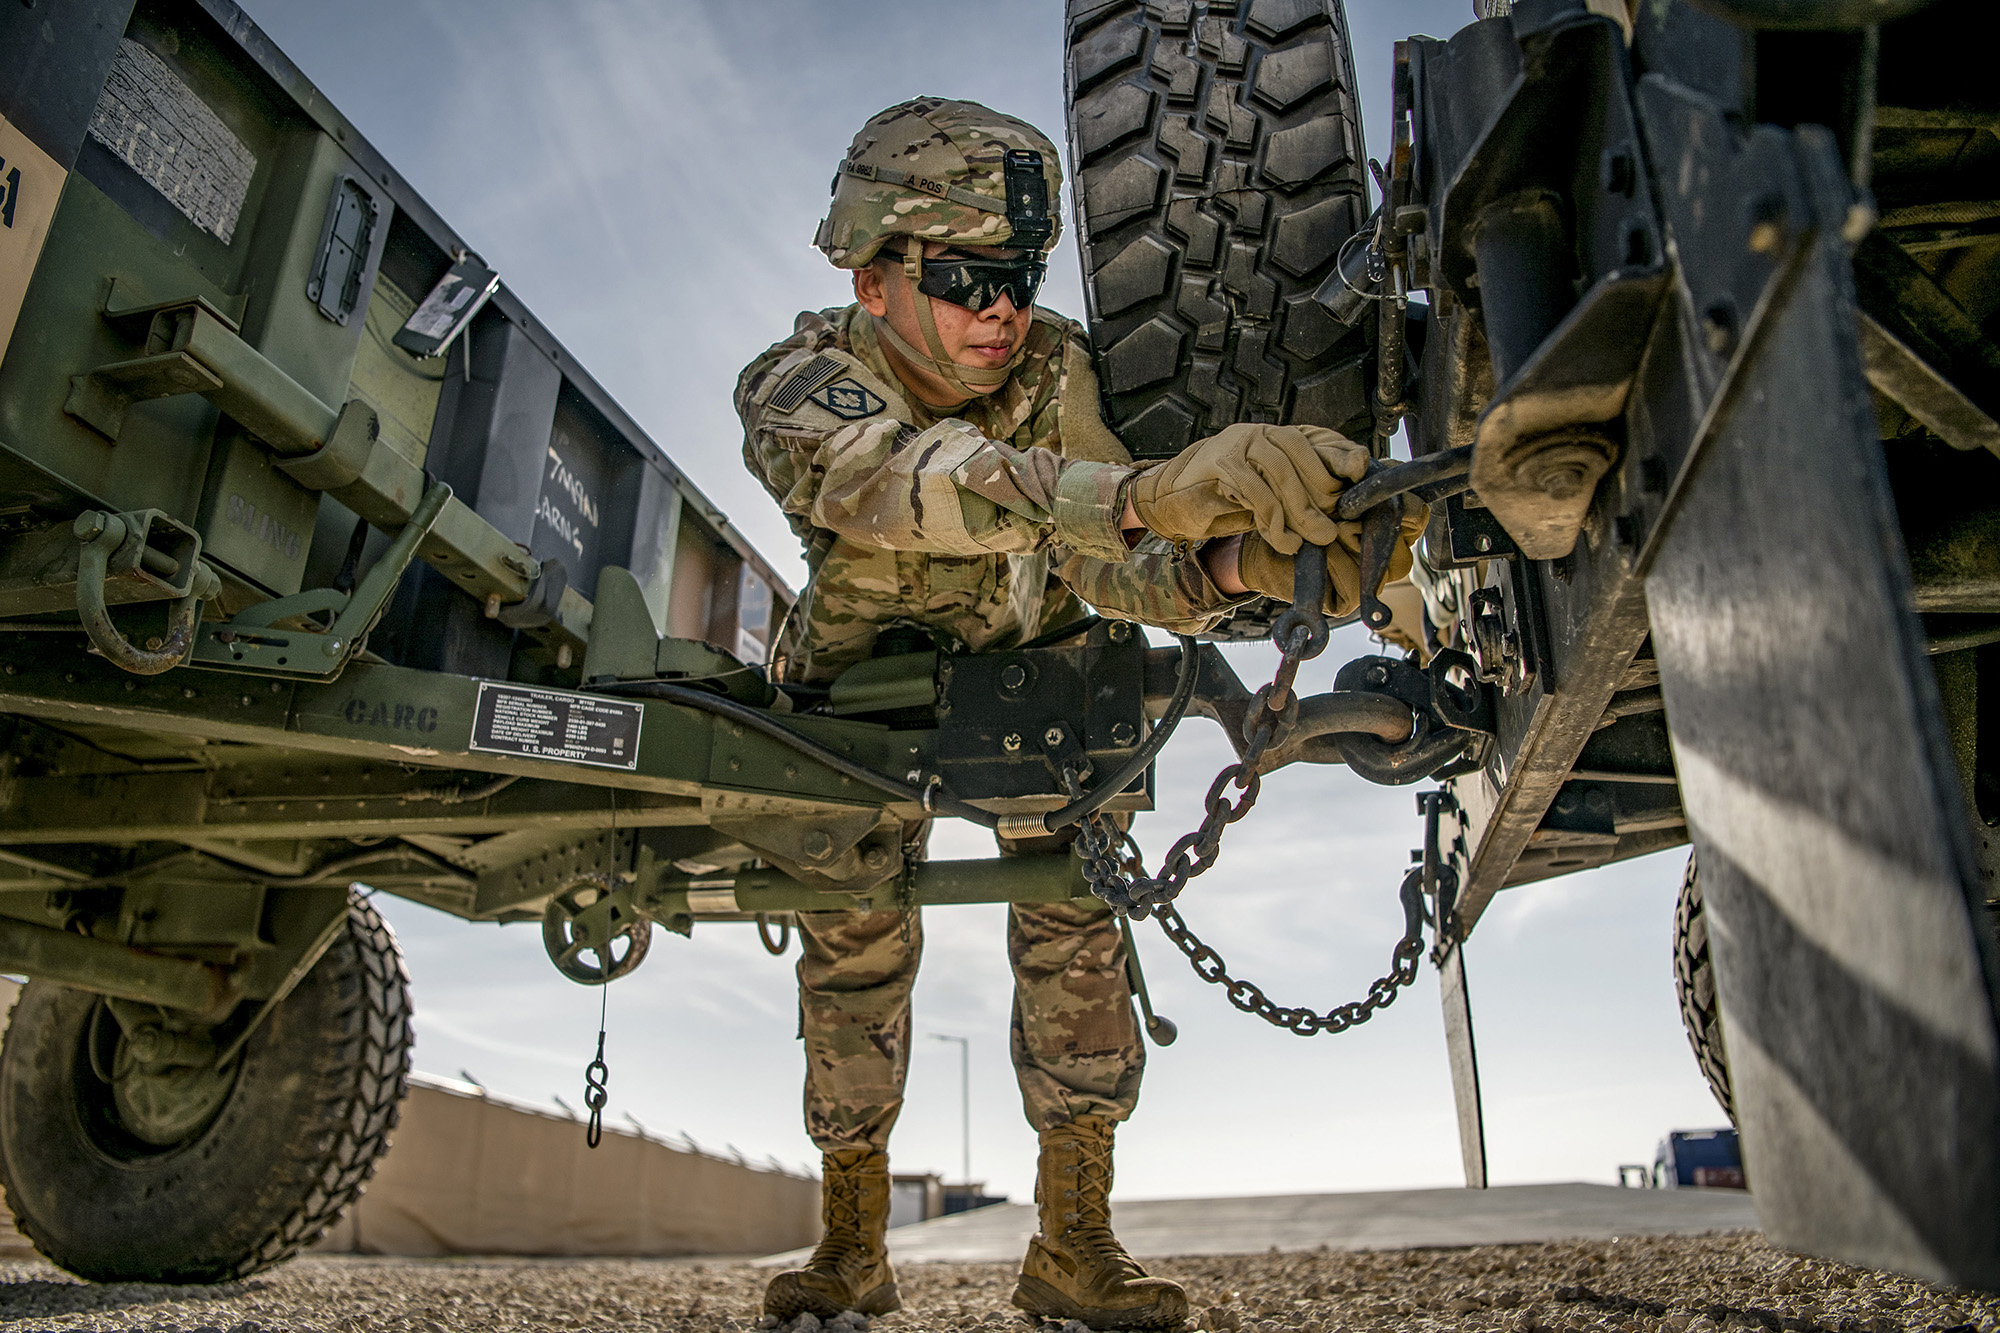 Pvt. 1st Class Pablo Aguirre secures an M1101 trailer to the back of a high mobility multipurpose wheeled vehicle on Dec. 22, 2020, in support of Operation Spartan Shield and Operation Inherent Resolve. (Sgt. Dustin D. Biven/Army)